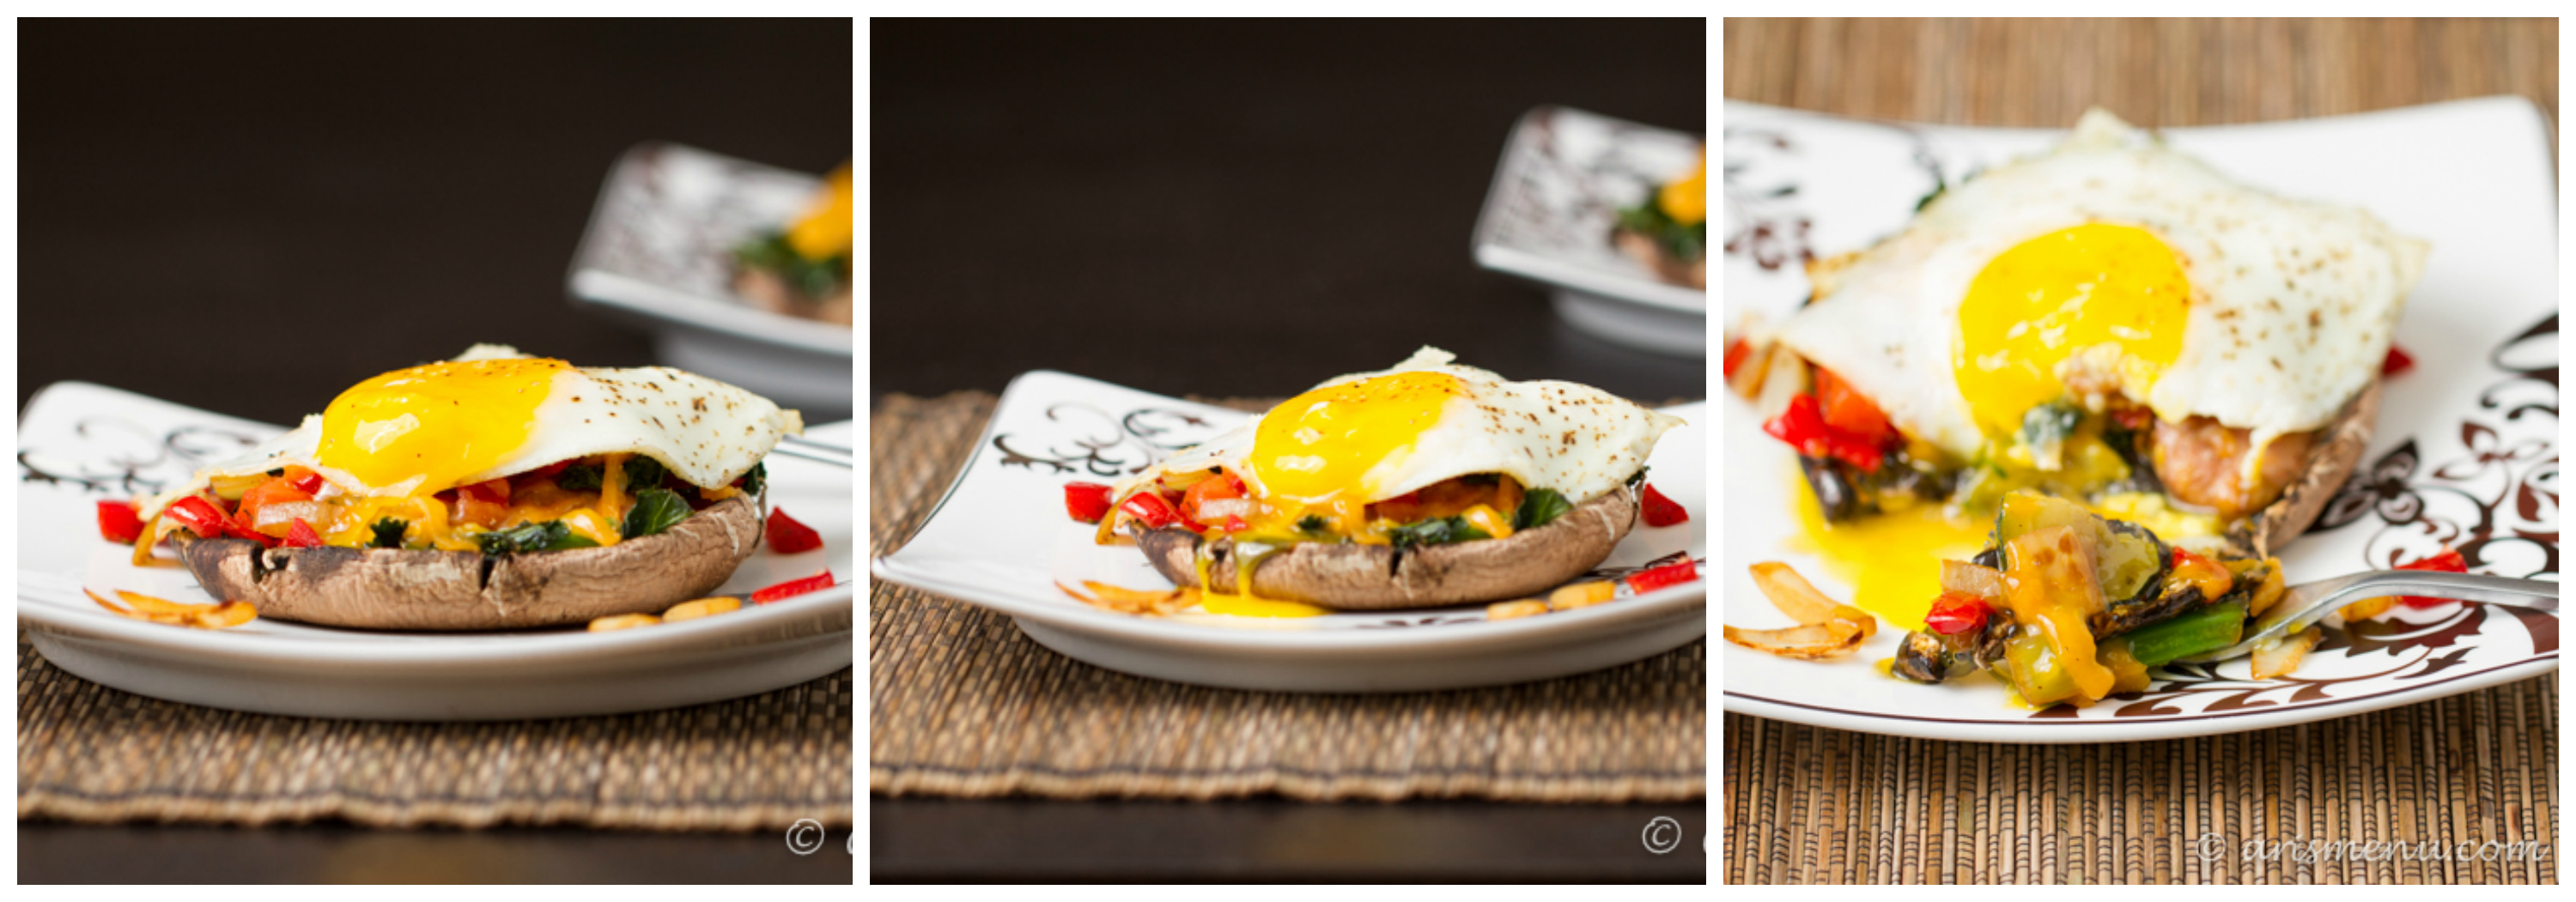 Portobello Breakfast Cups #glutenfree via arismenu.com.jpg